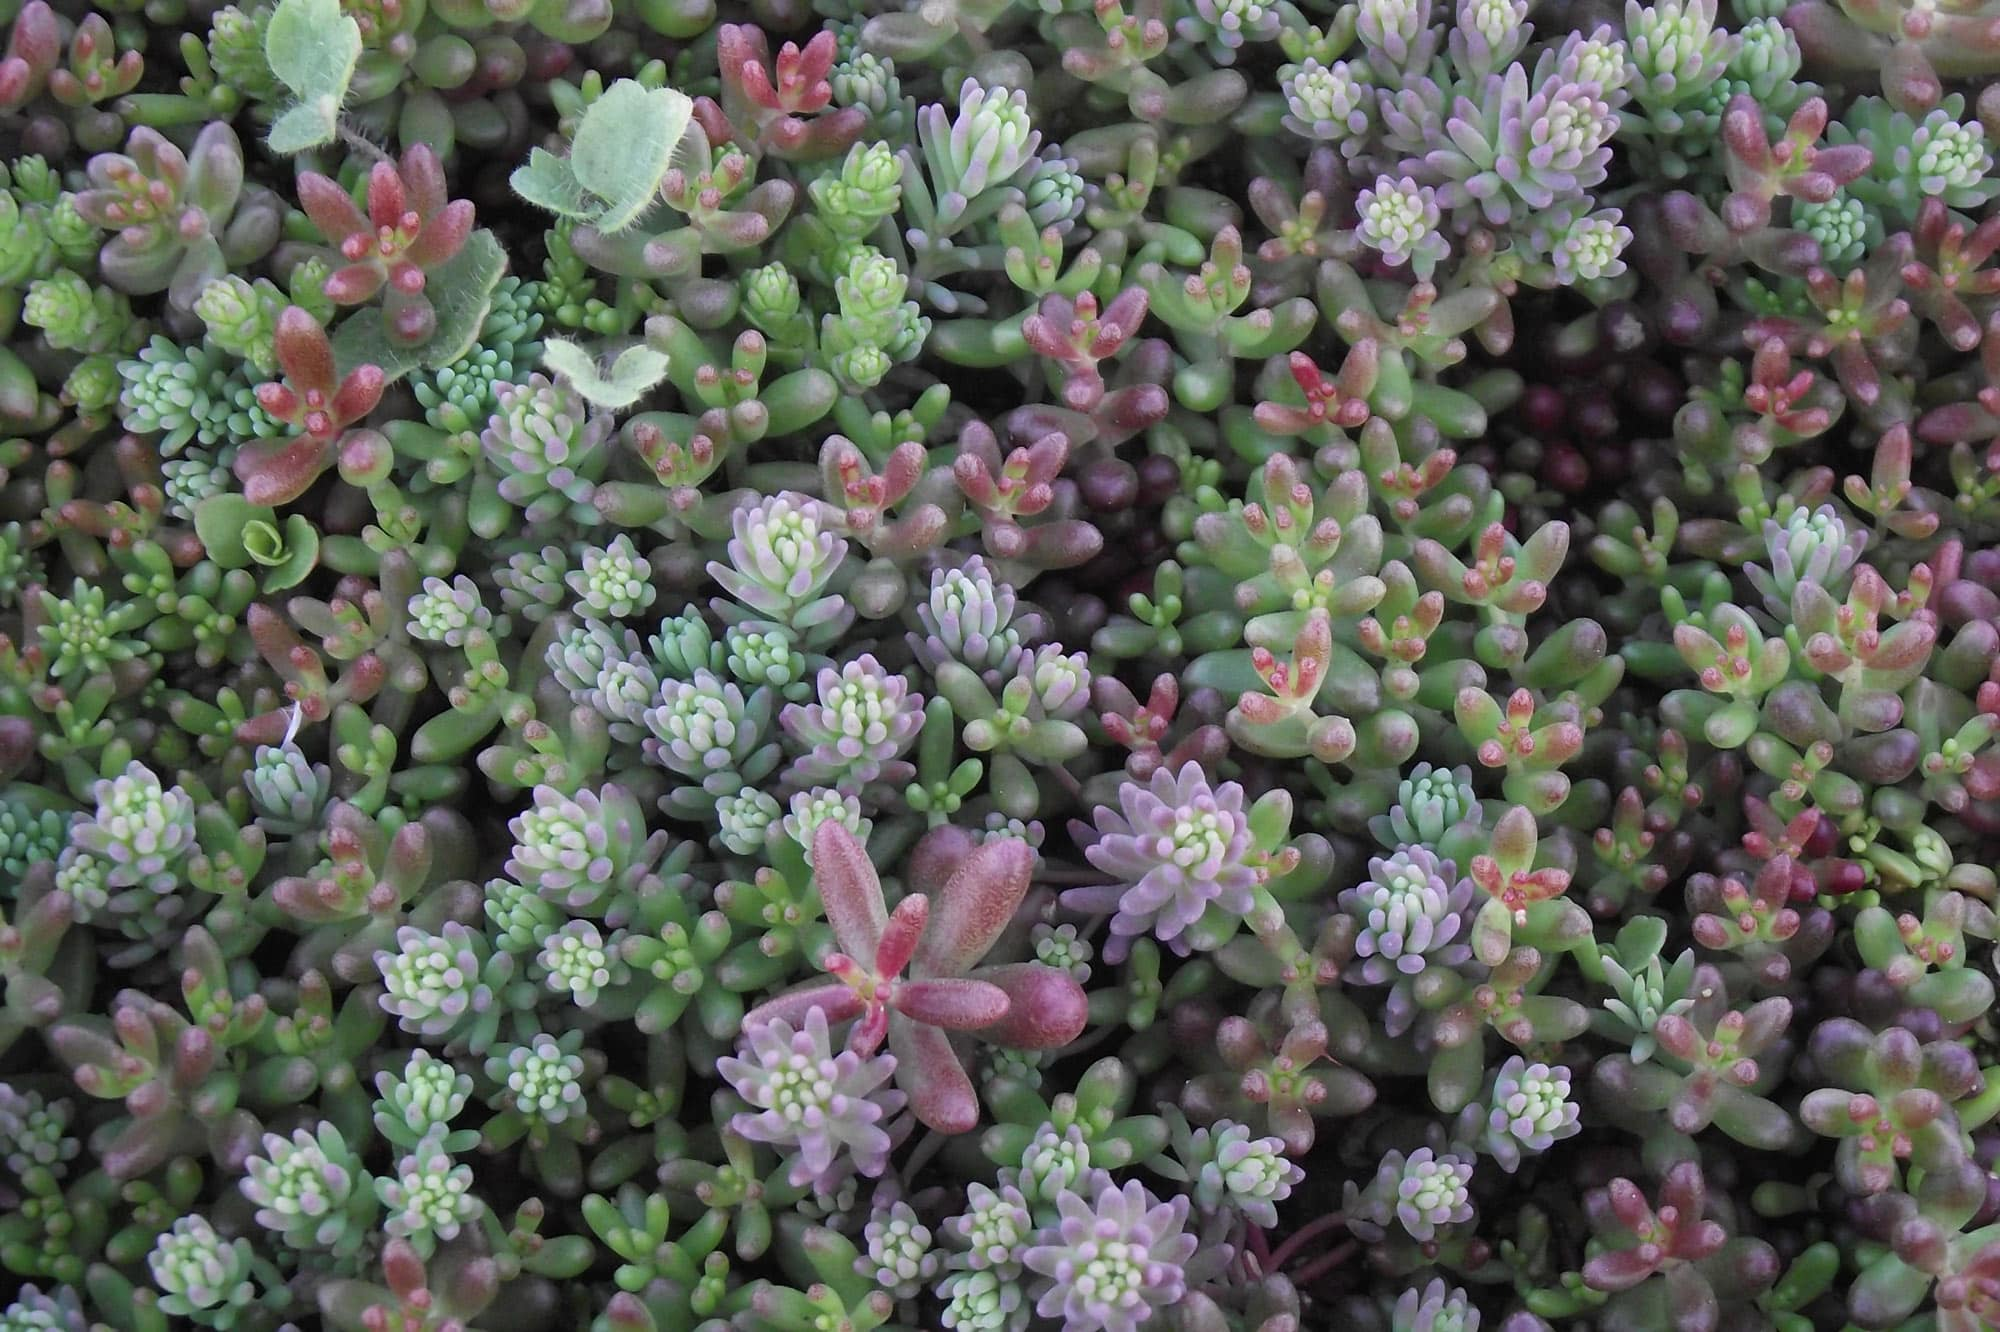 drought tolerant sedum plants make great alternative lawns that won't go brown in the summer